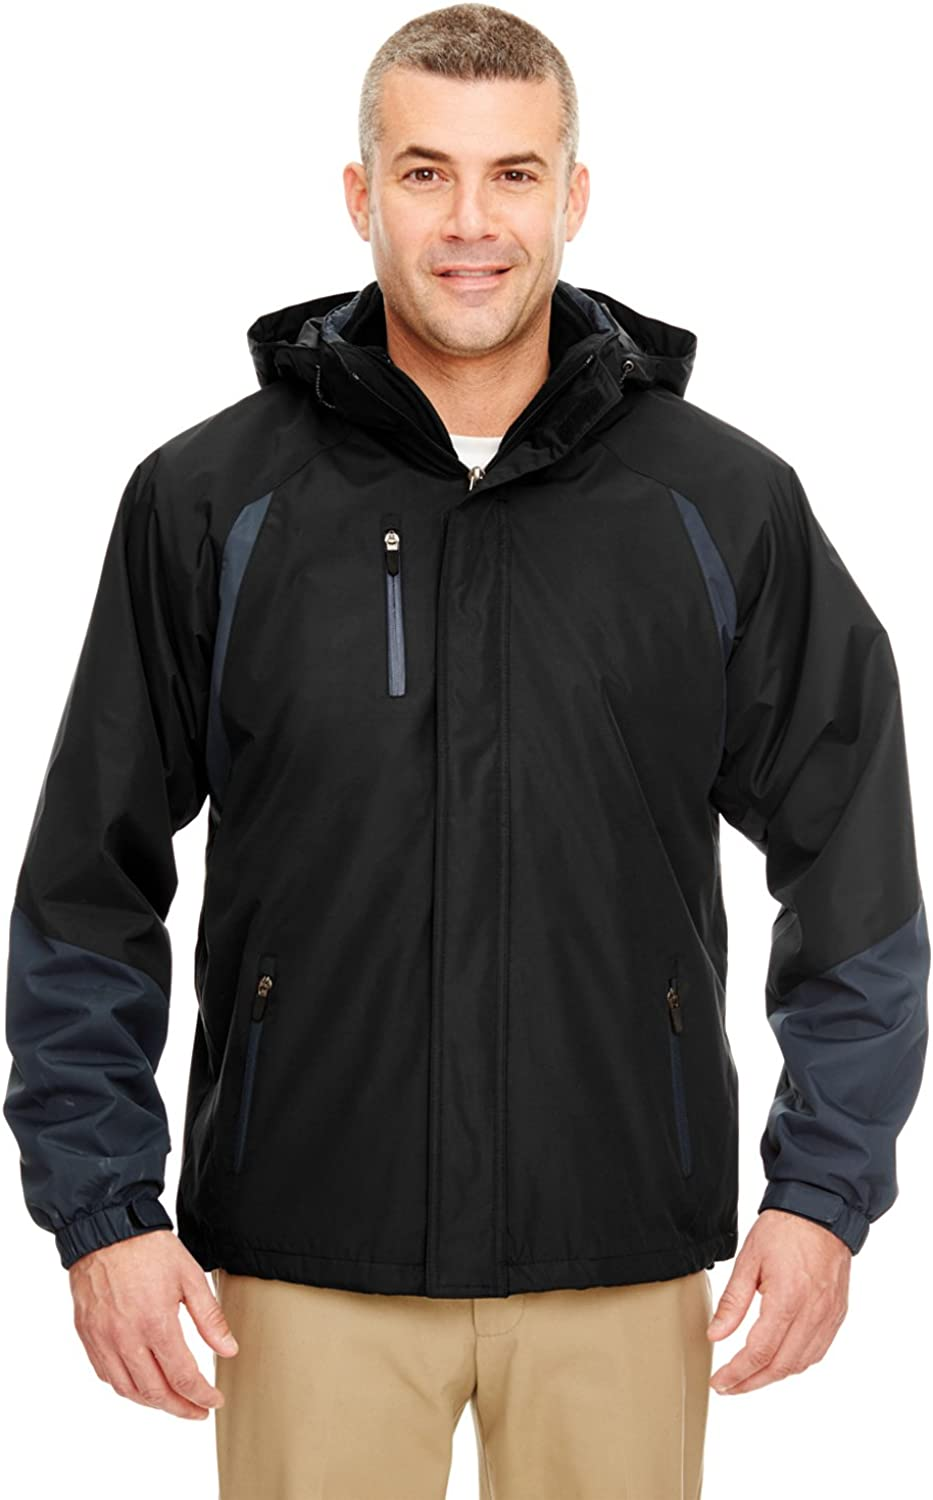 Mens Three-in-One color Block Systems Jacket (8939)